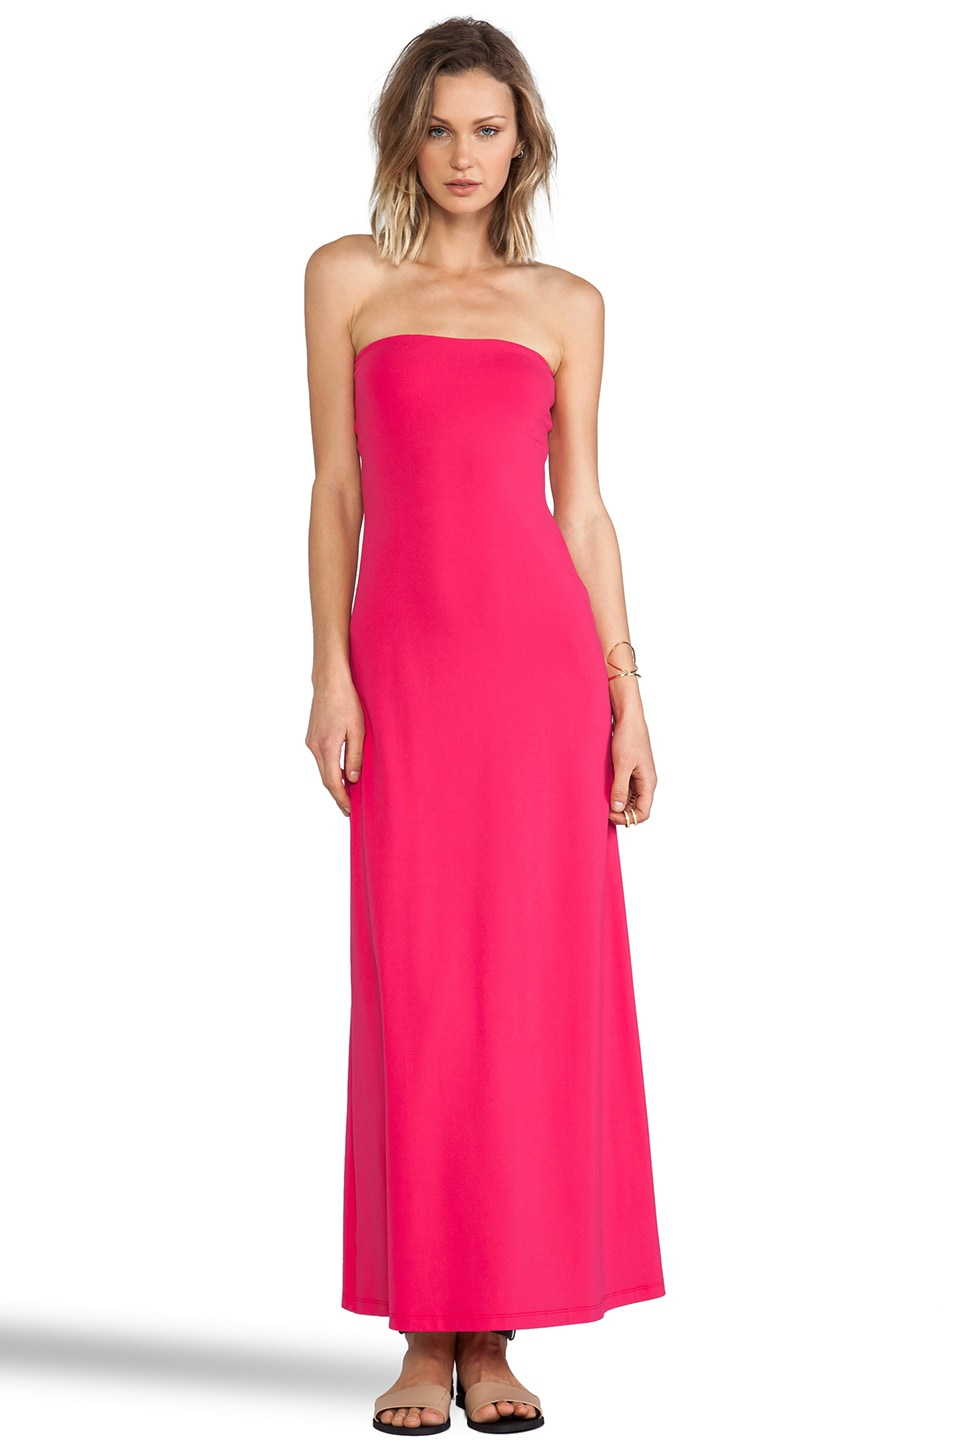 Susana Monaco Helena Maxi Dress in Glam